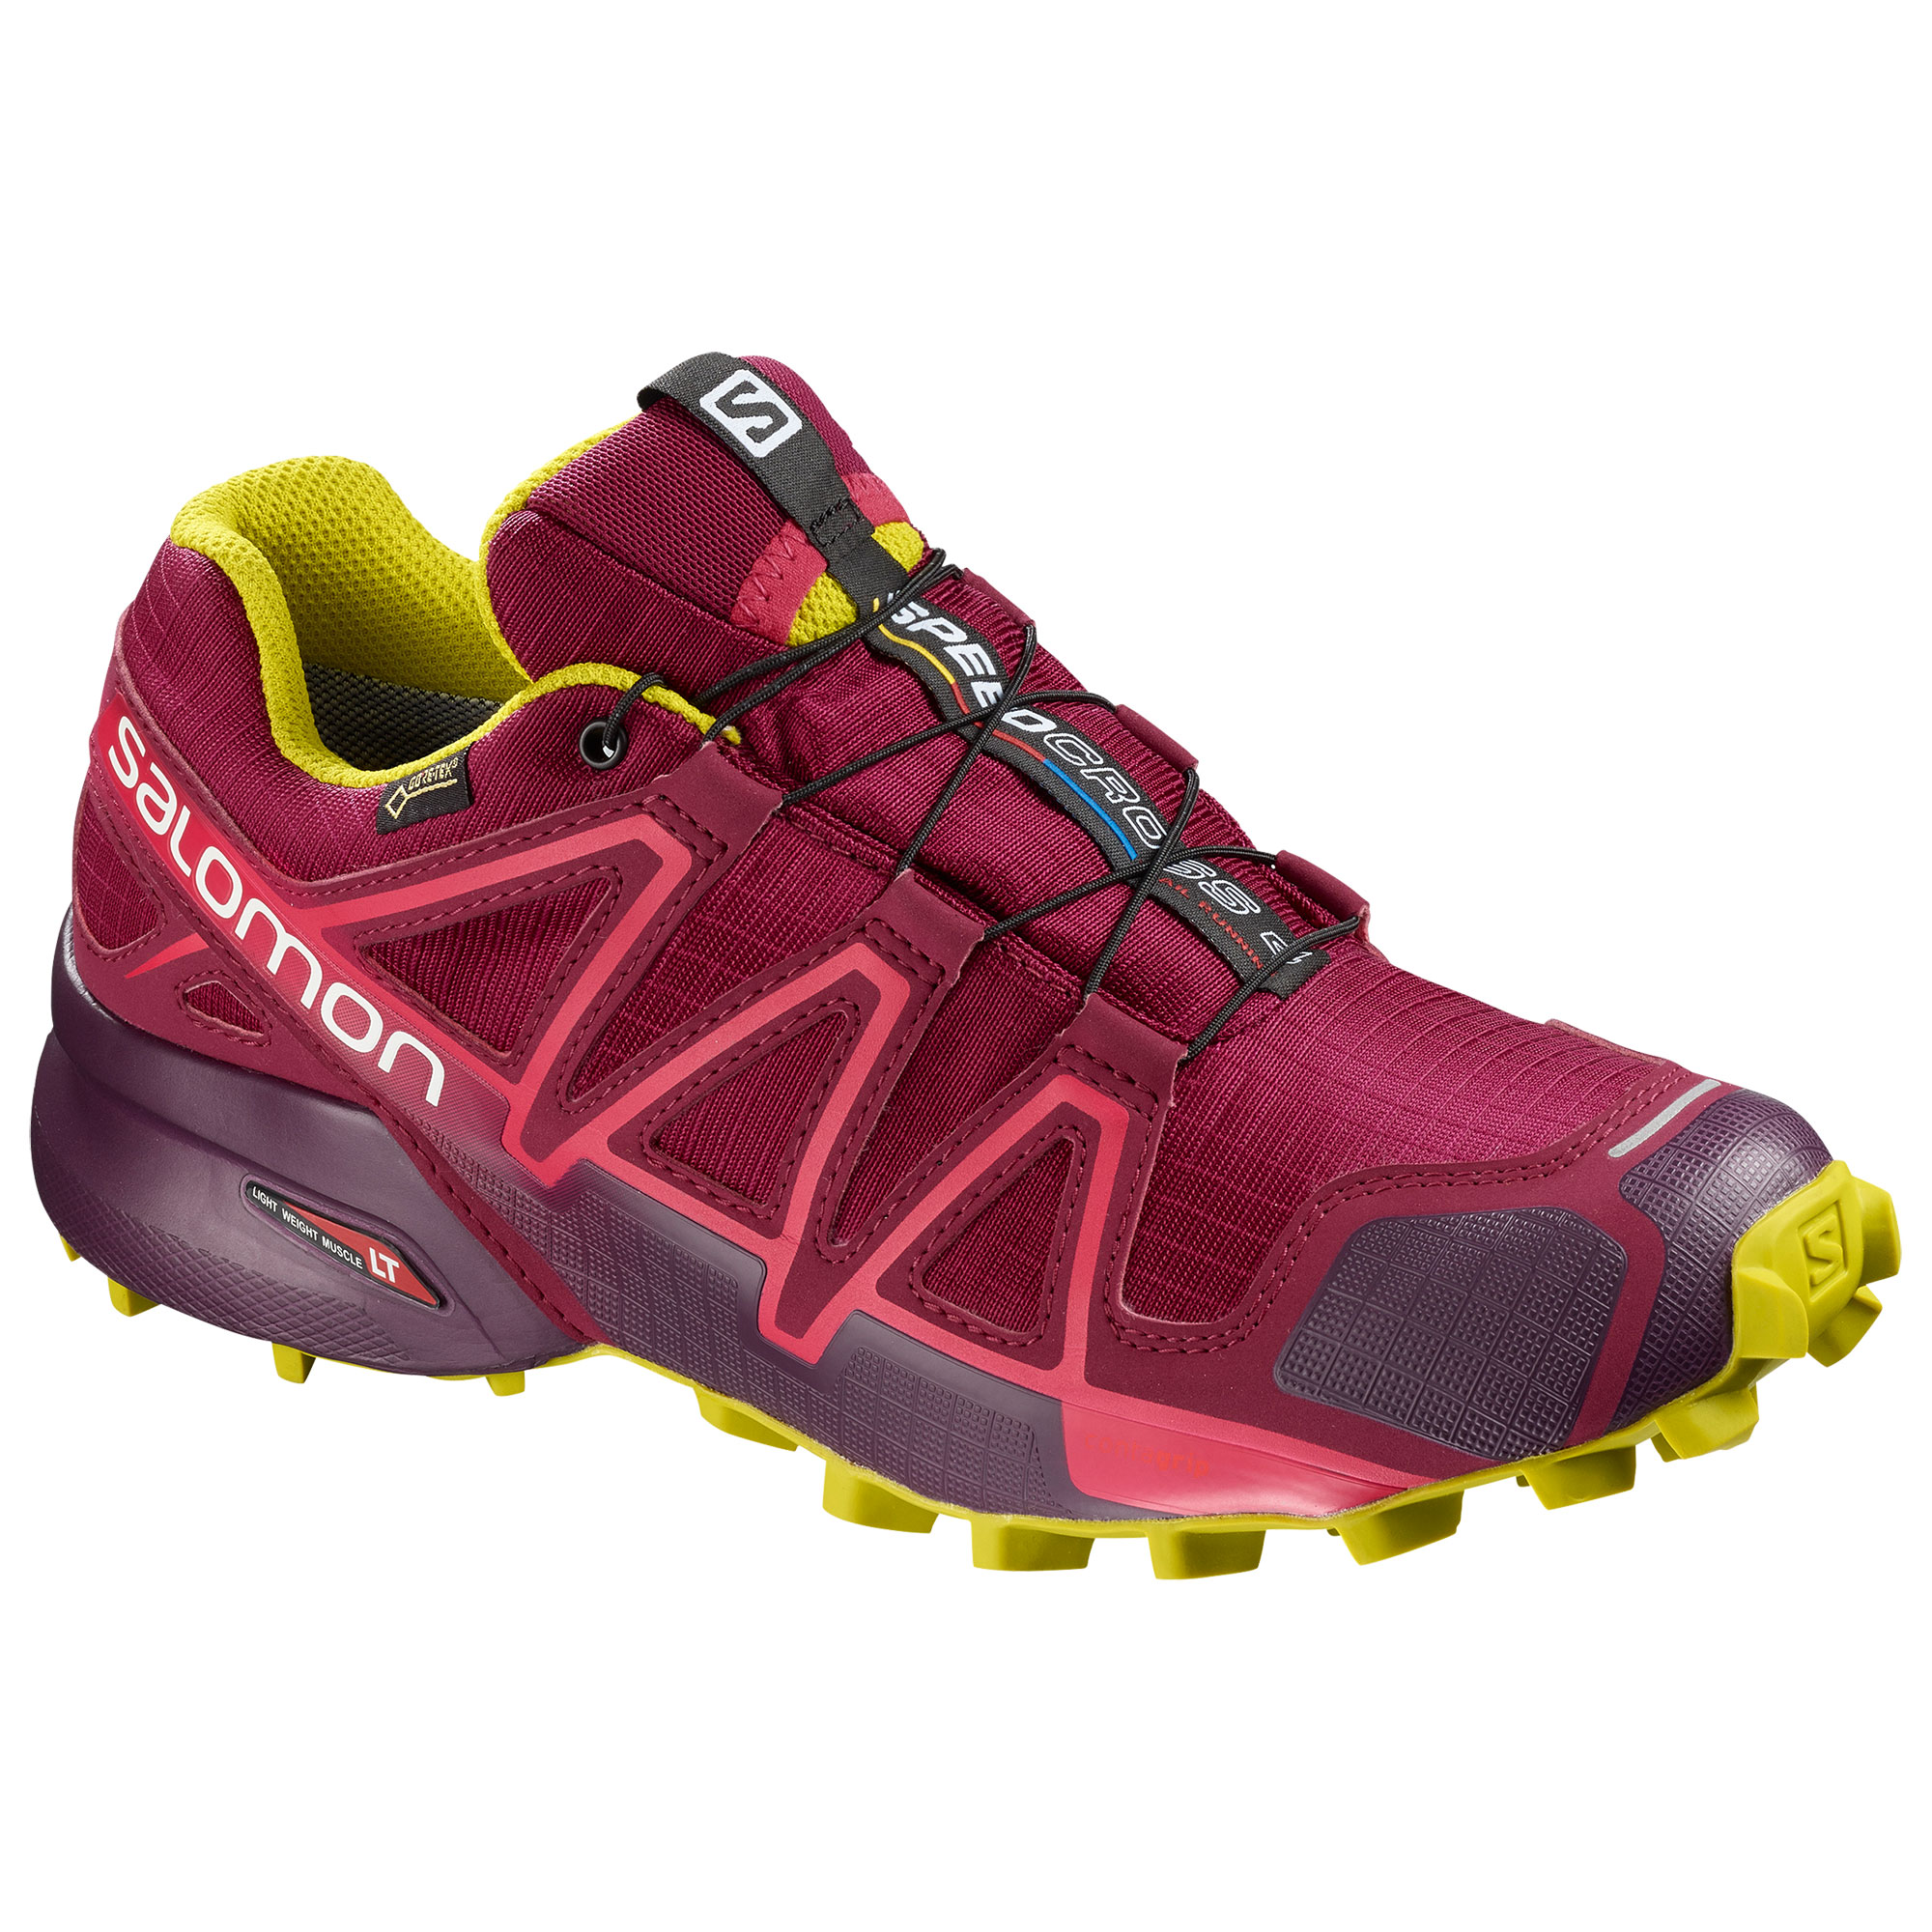 Salomon Speedcross 4 GTX Women's Trail Running Shoe, UK 6